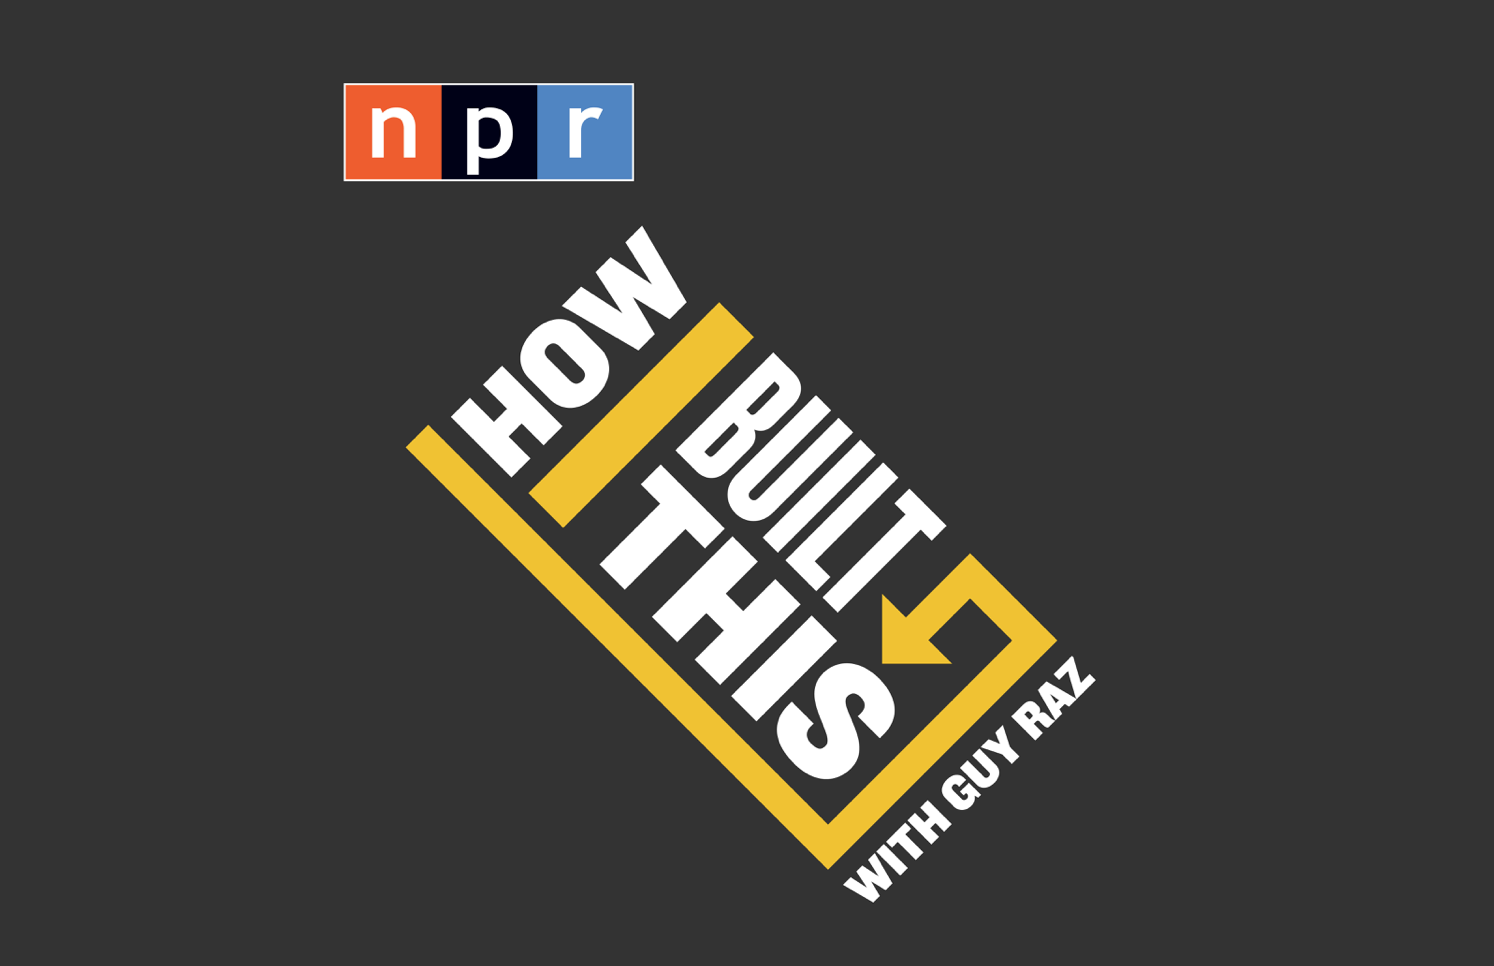 Whitney Wolfe Talks Tinder, Online Harassment & Founding Bumble On 'How I Built This' Podcast